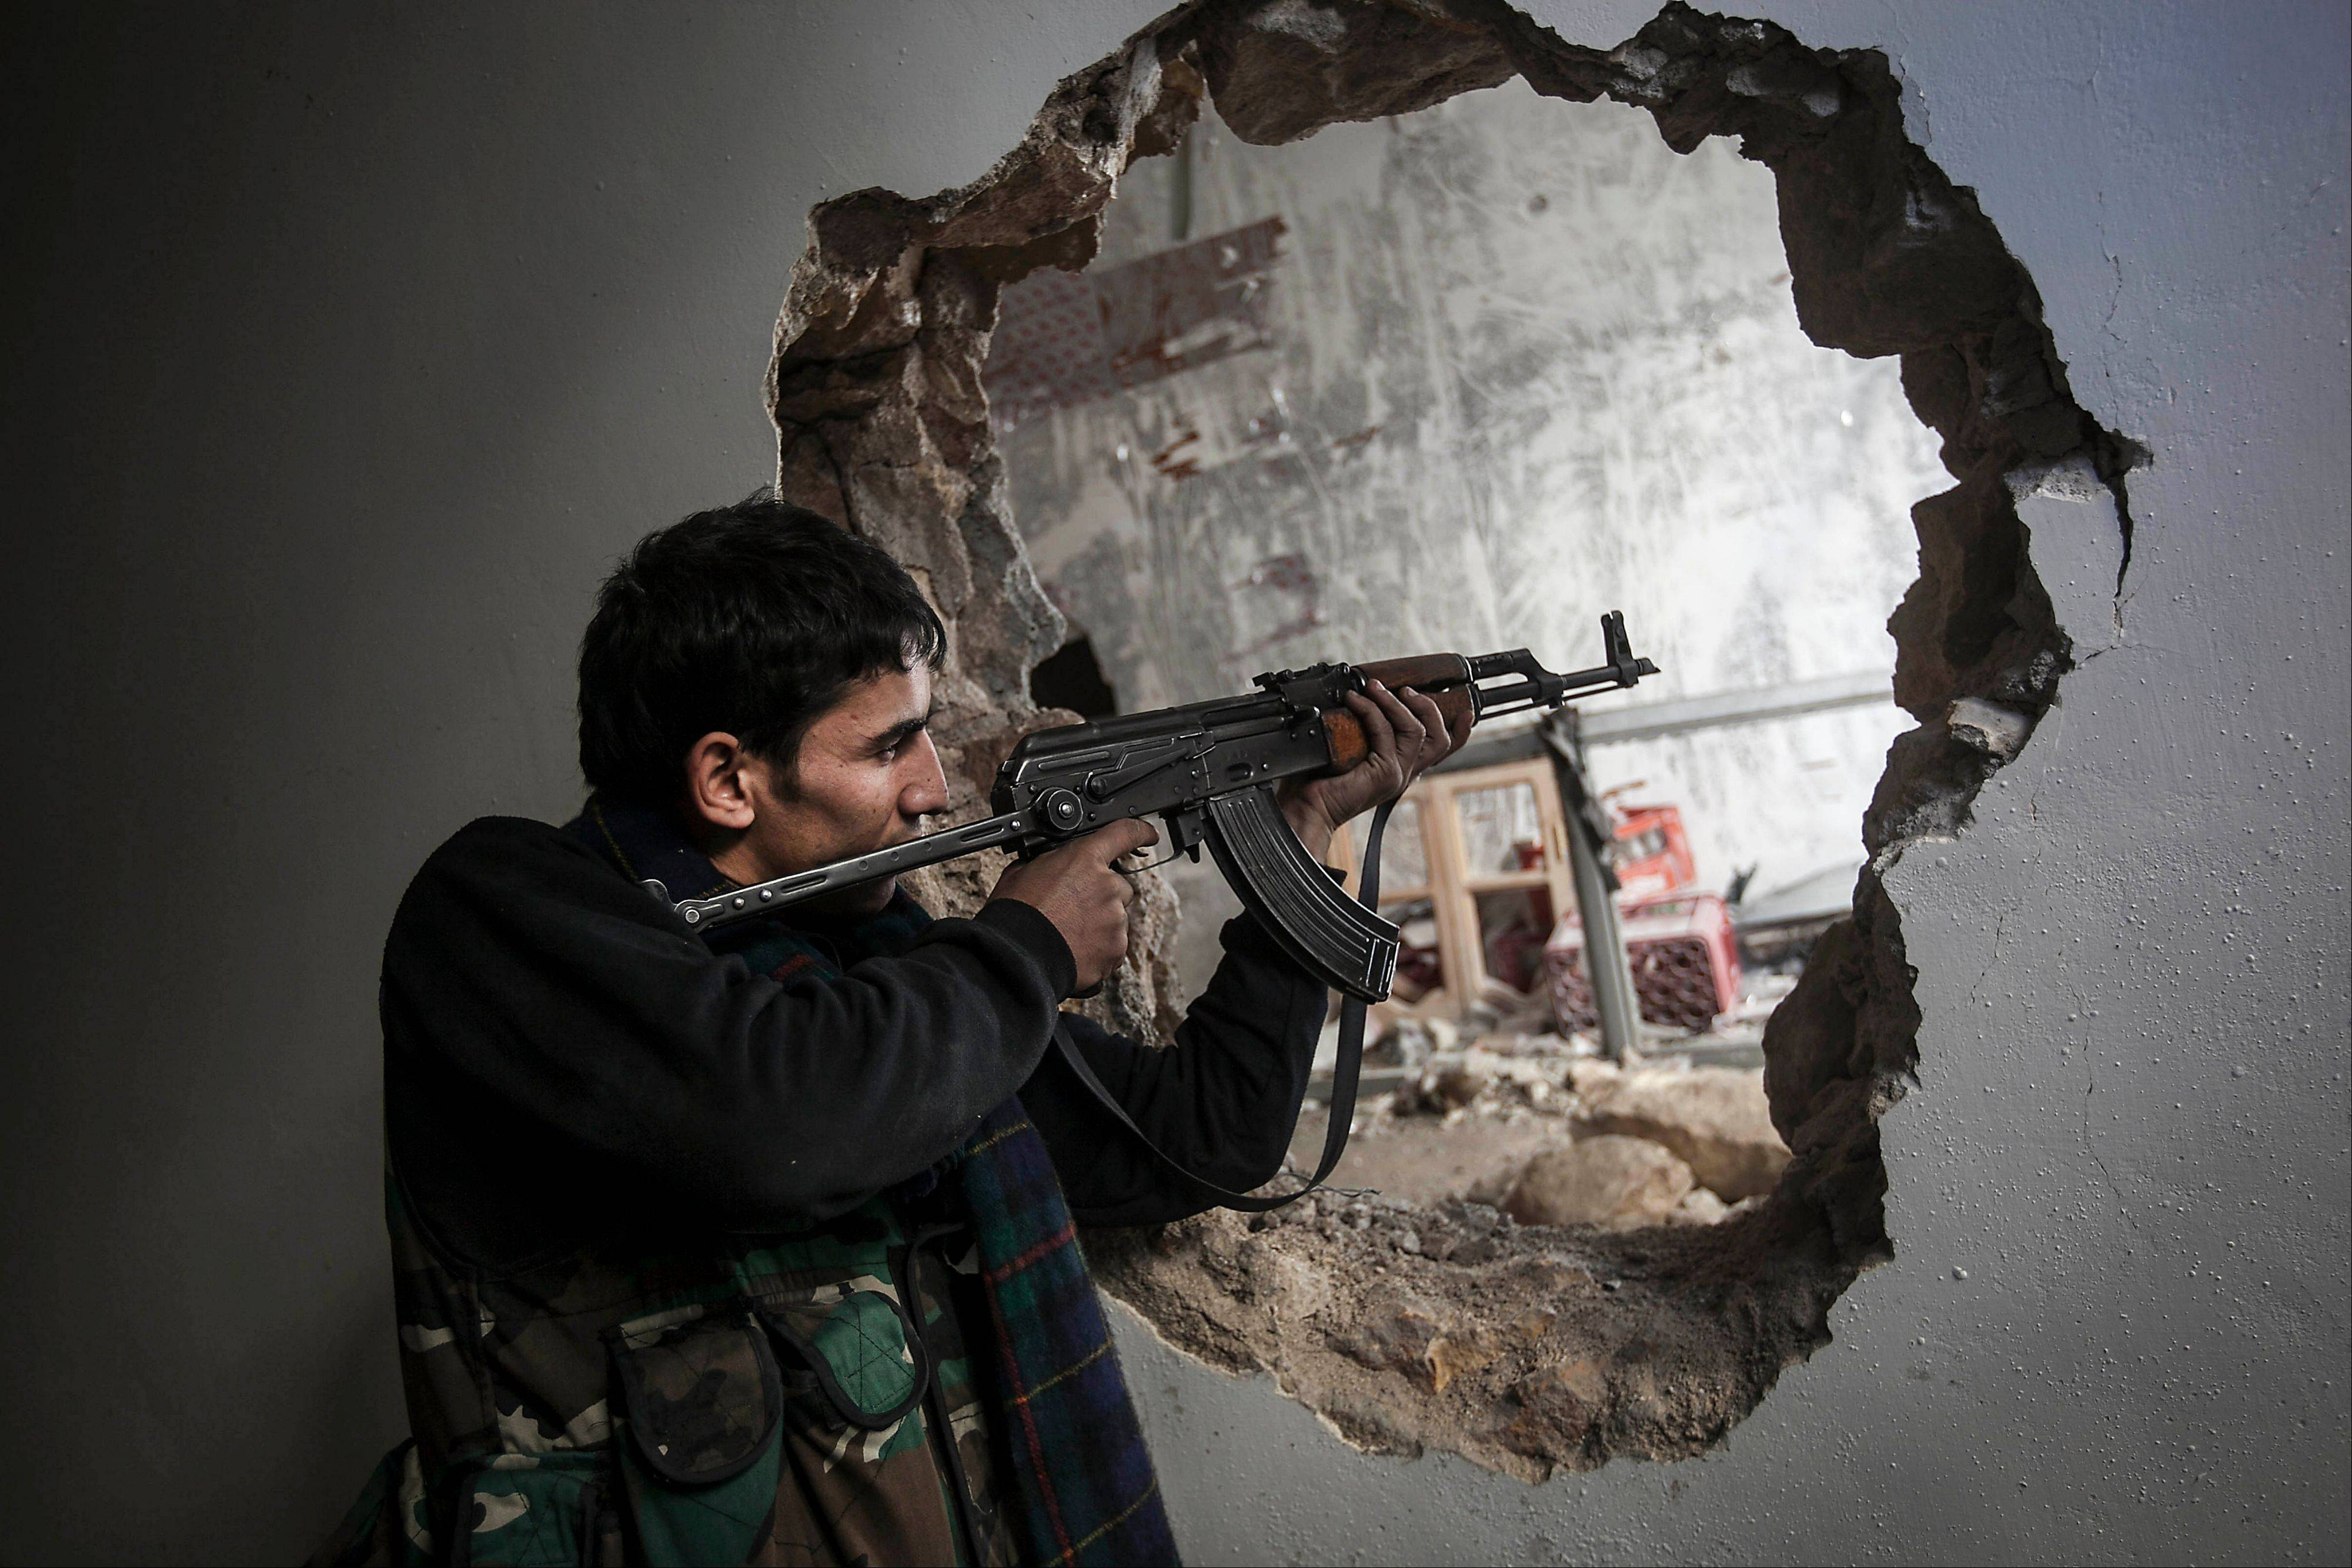 A Free Syrian Army fighter fires his weapon during clashes with government forces in Aleppo on Sunday.